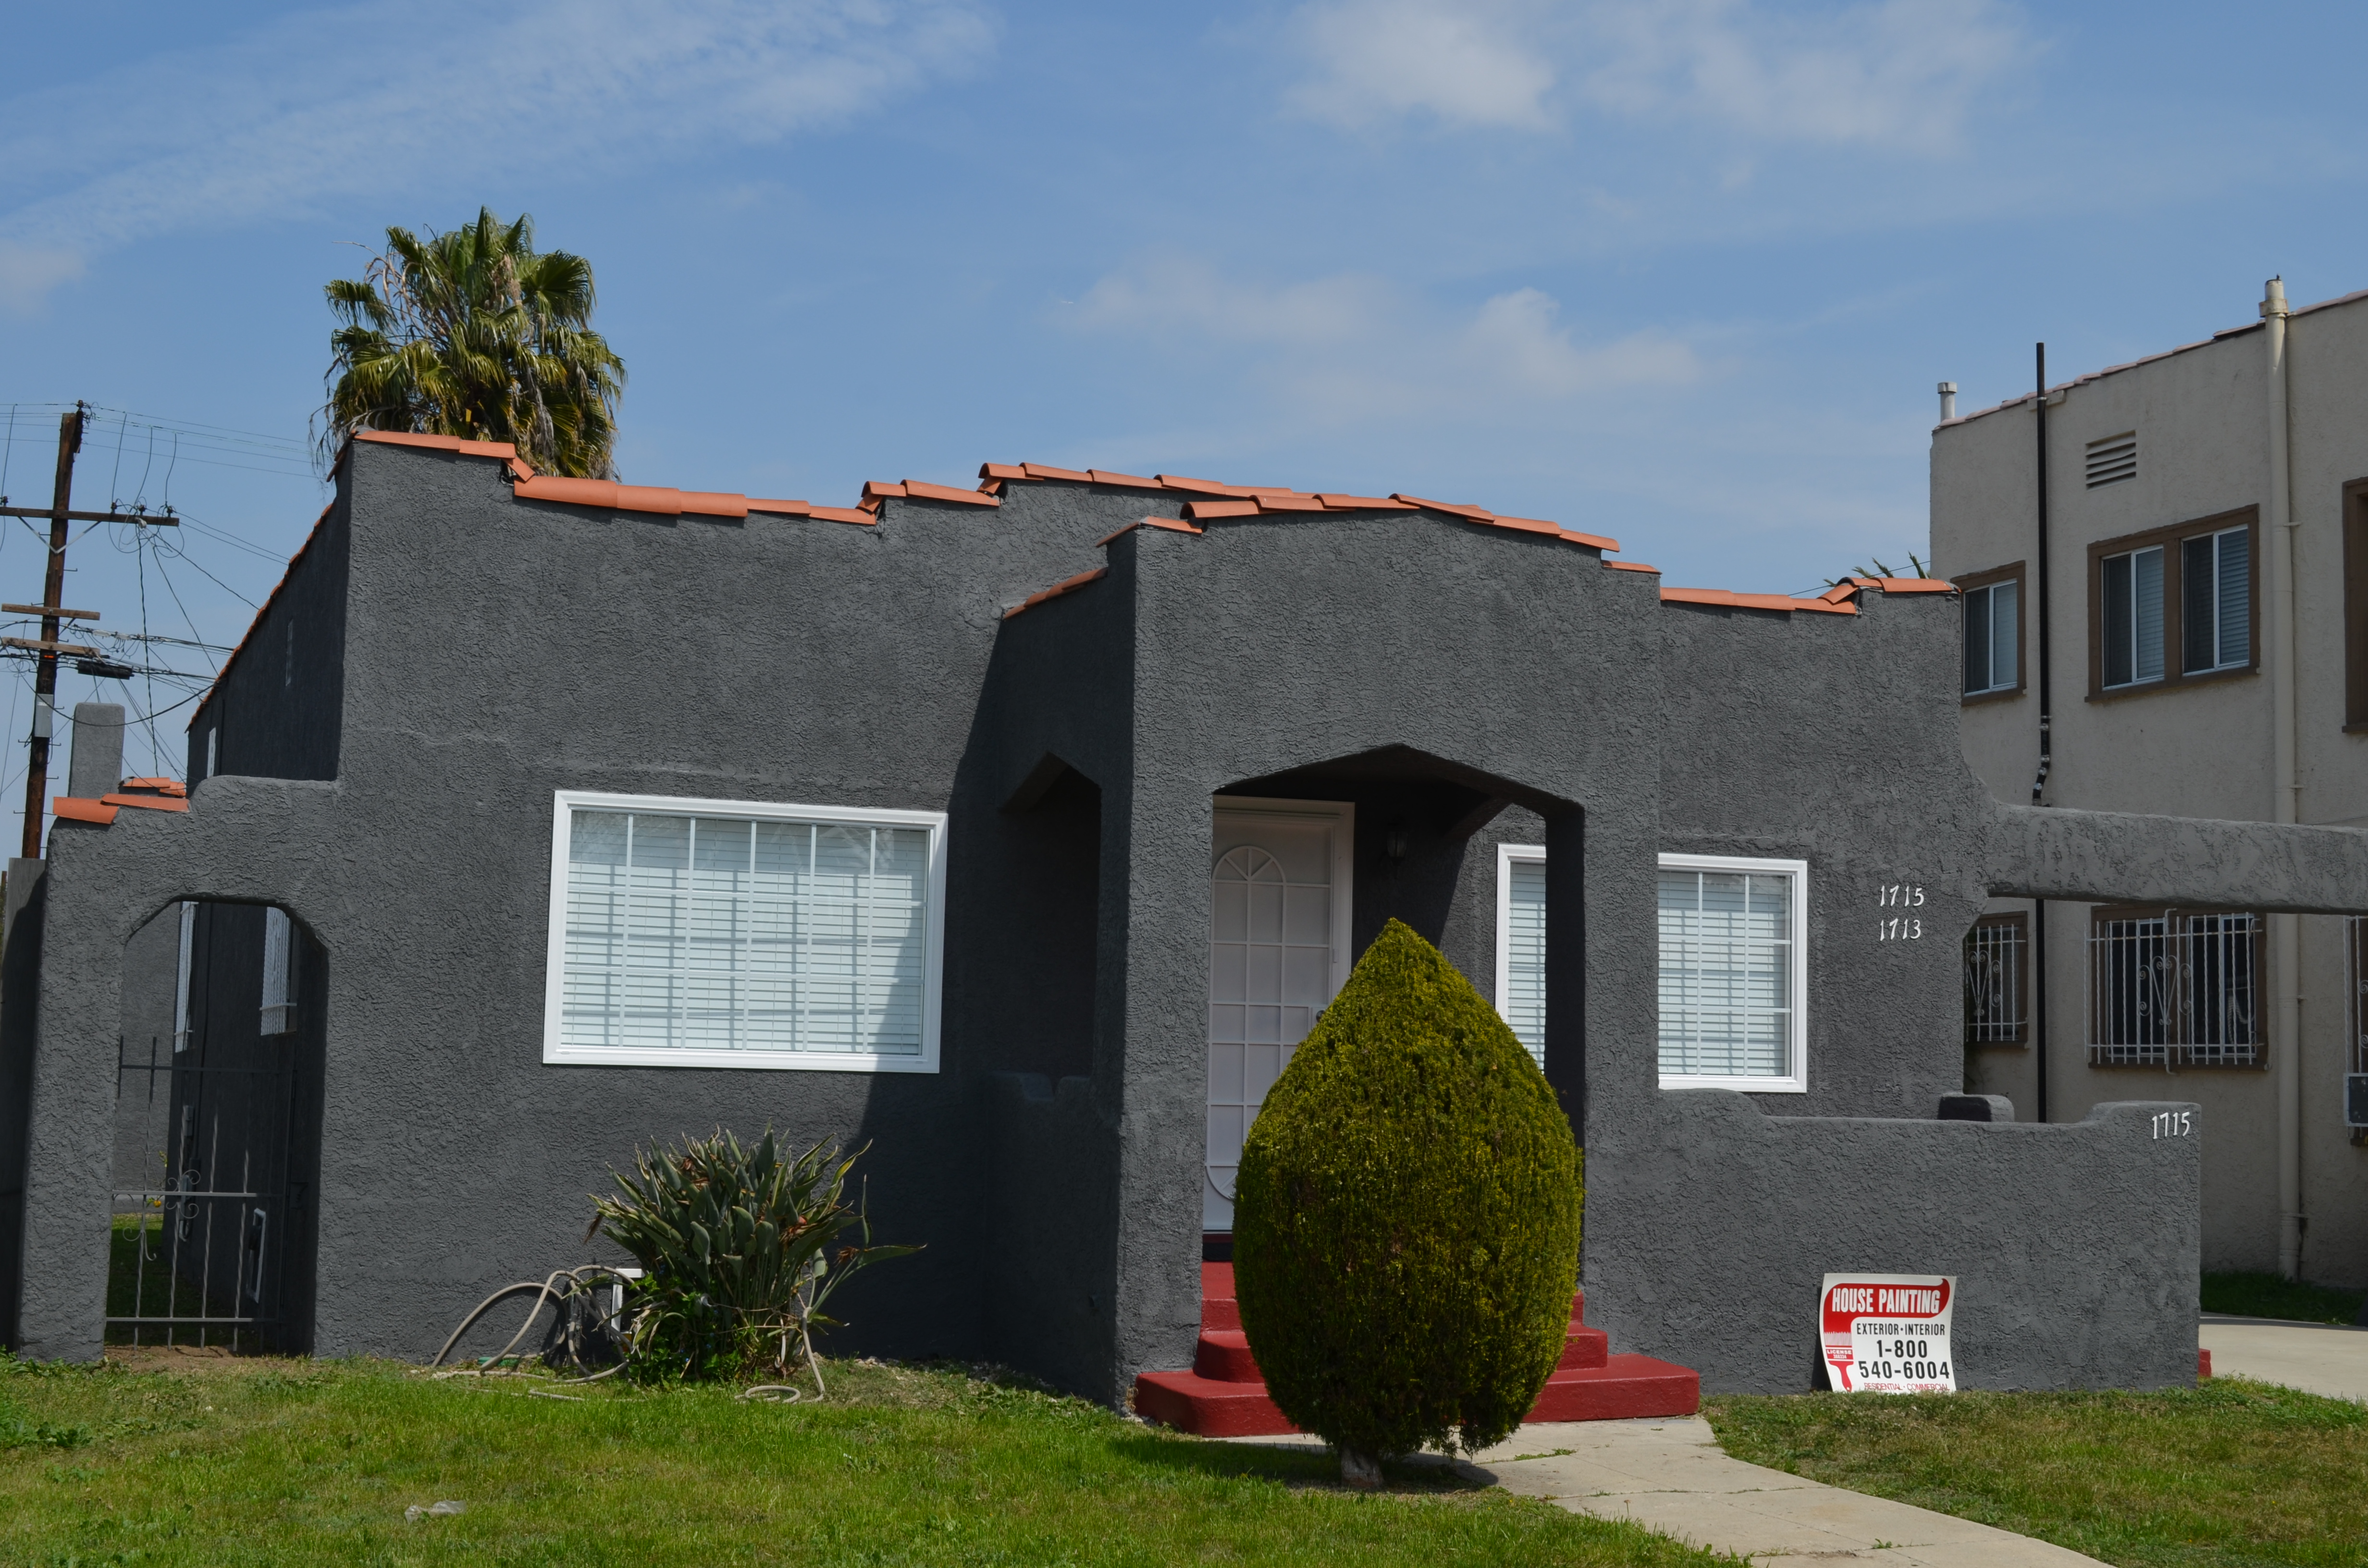 Los Angeles Painting Contractor, House Painting Inc., successfully completed an exterior residential painting job in Los Angeles 90002.